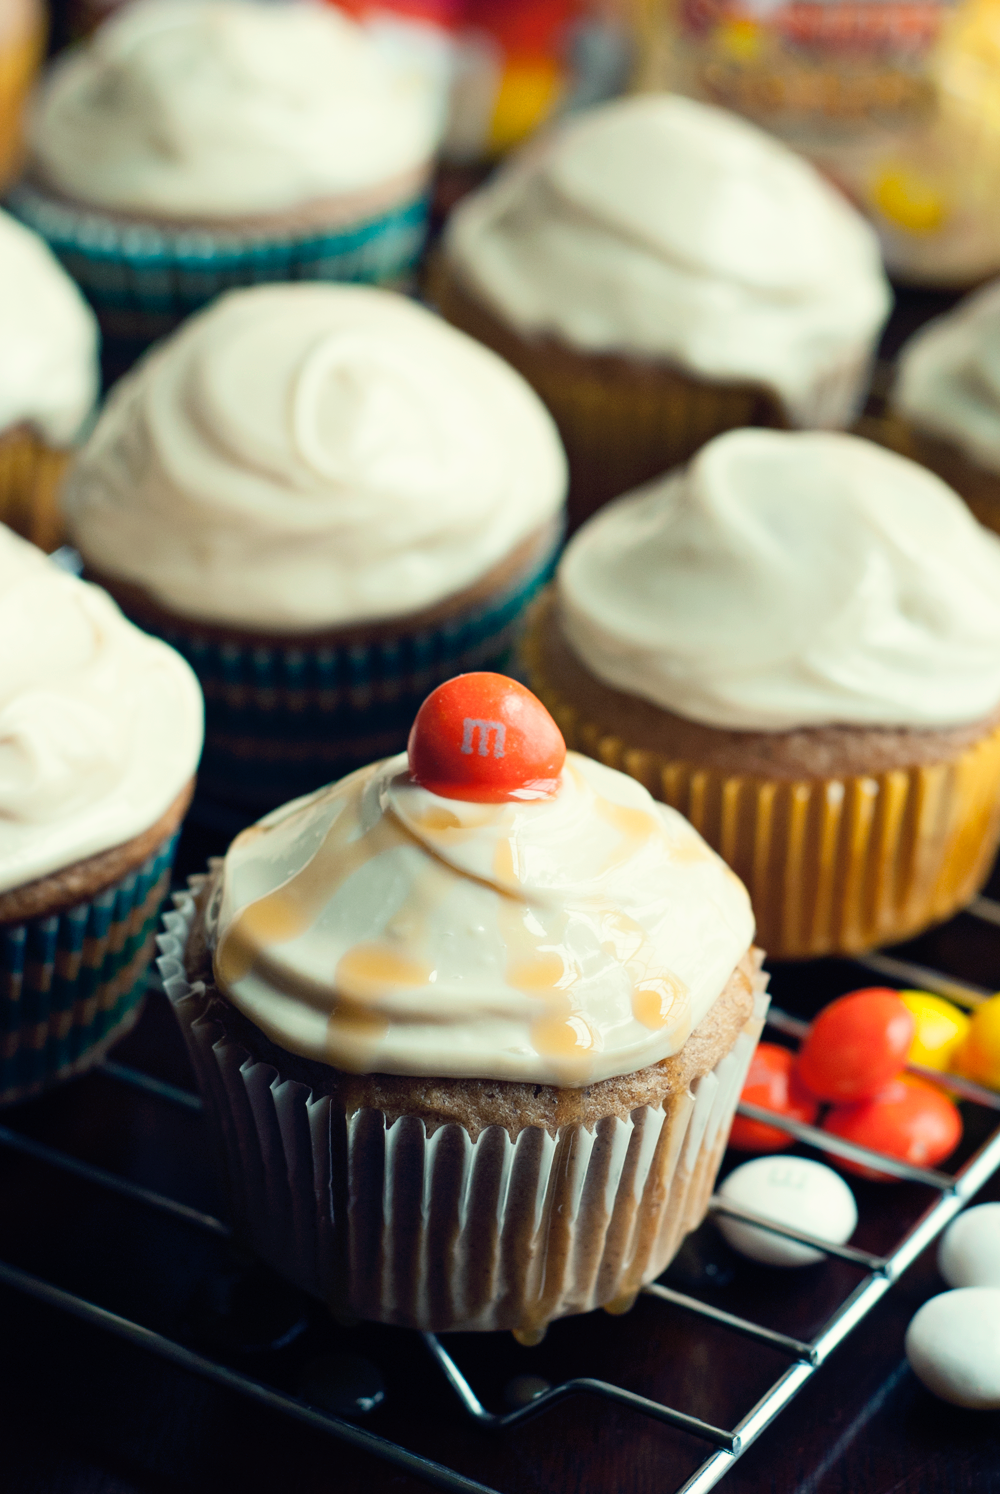 An angled close up view of a wire cooling rack with spiced apple cupcakes on top. Cupcakes are in paper wrappers and topped with caramel cream cheese frosting. The front cupcake has a caramel drizzle and a single M&M on top, while loose M&Ms are scattered below the wire rack to the right.